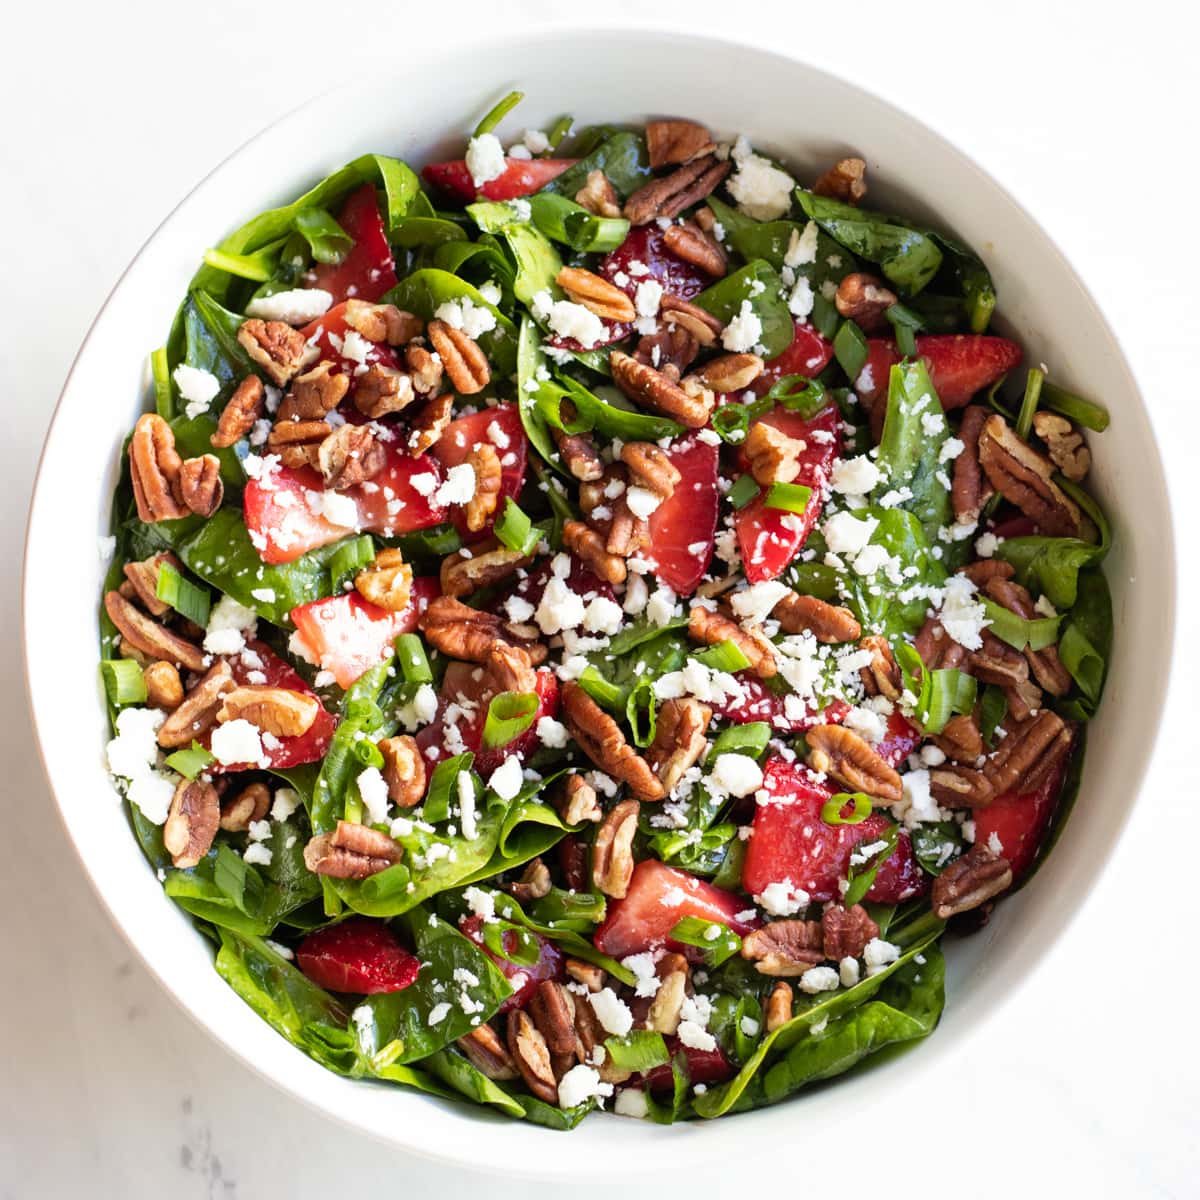 A large white bowl filled with spinach, sliced strawberries, pecans, crumbled feta cheese, and sliced green onion tops.